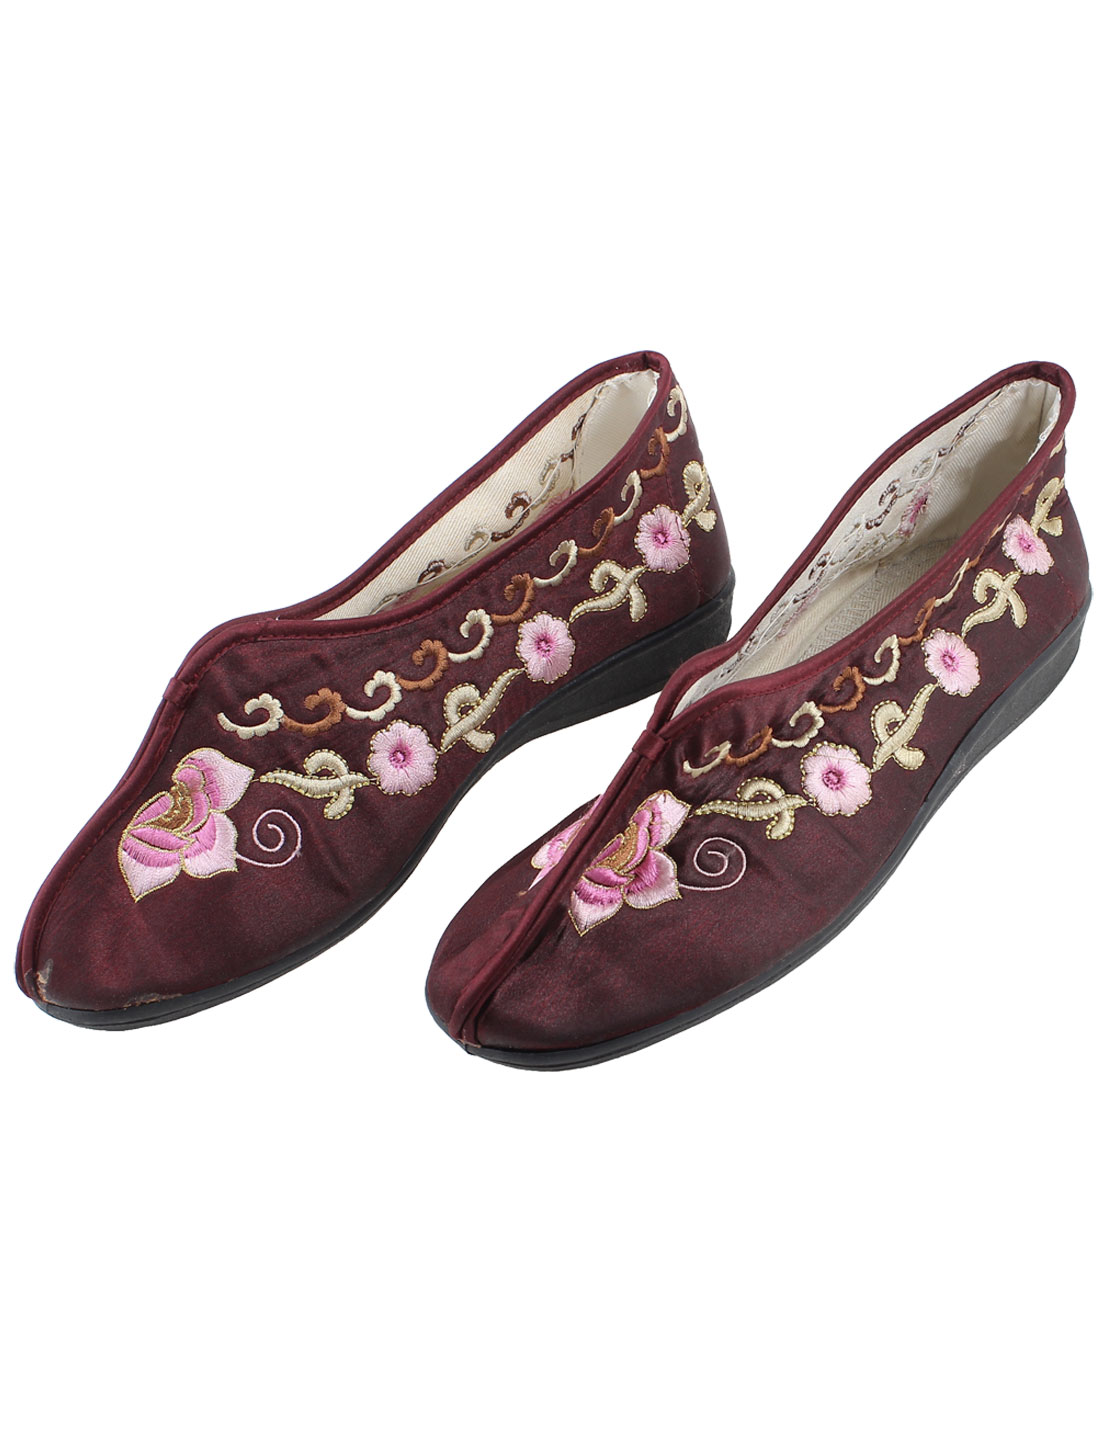 Ladies Dark Red Floral Pattern Cotton Blends Flat Shoes Pair EU 34